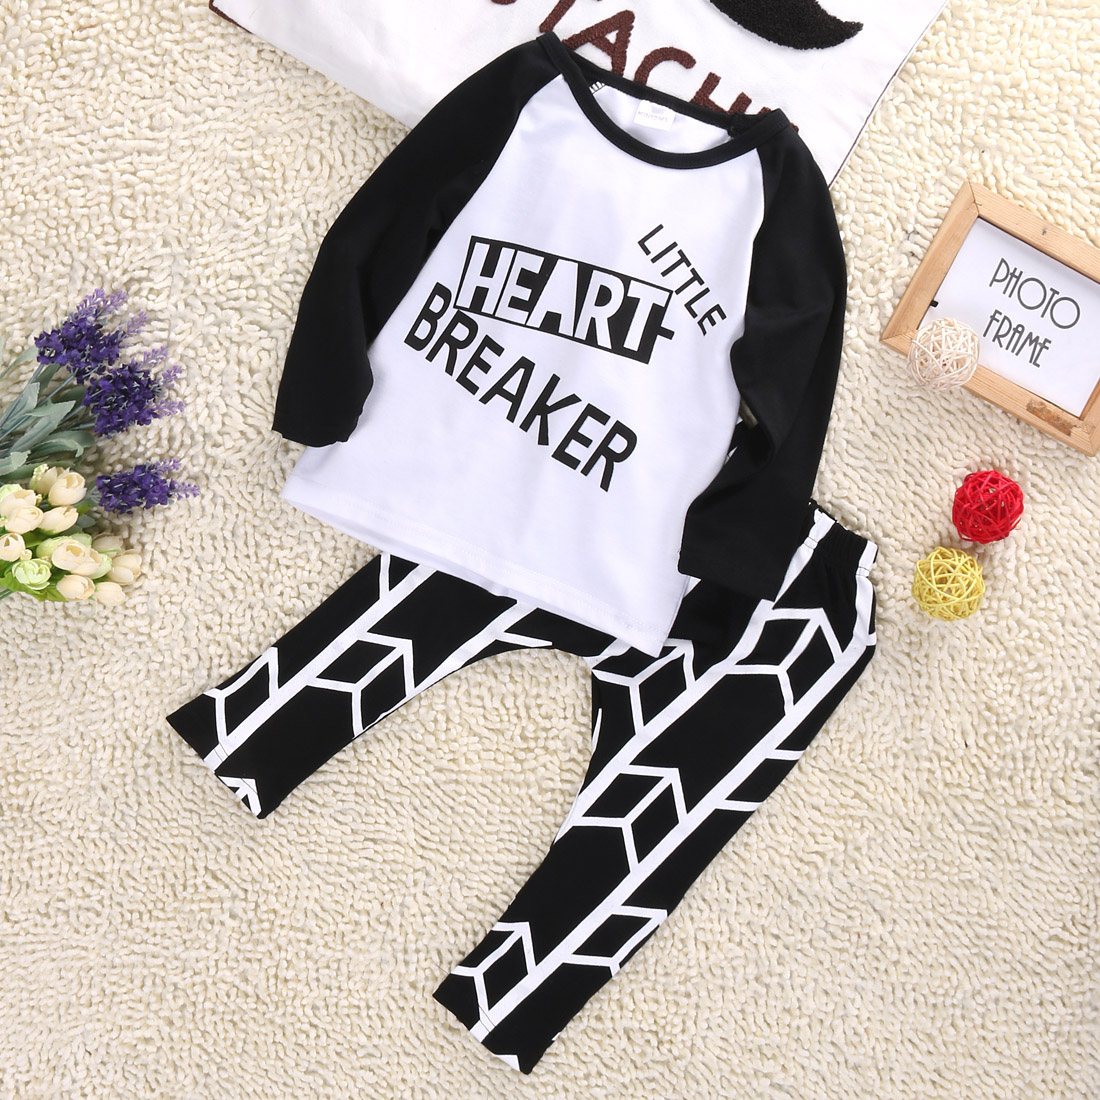 New Arrival Infant Baby Boys Girls Letter printed Outfits Babies Letters T-shirt+Pant Outfit Set Sleepwear Pajamas Clothing Pjs